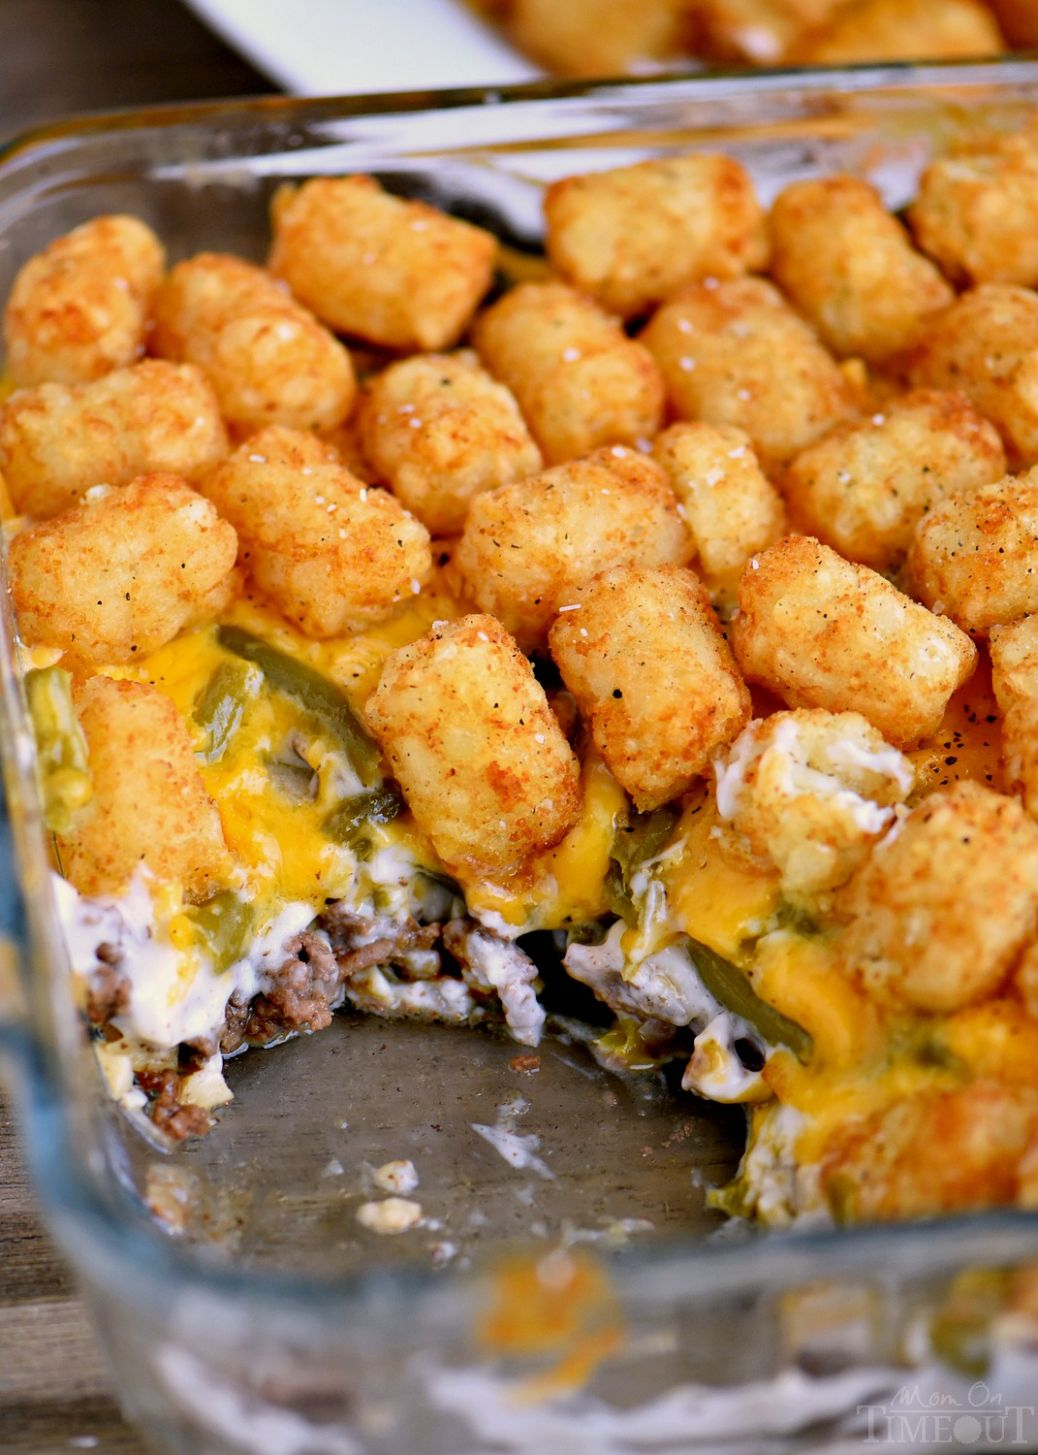 BEST Tater Tot Casserole - Simple Recipes Using Hamburger